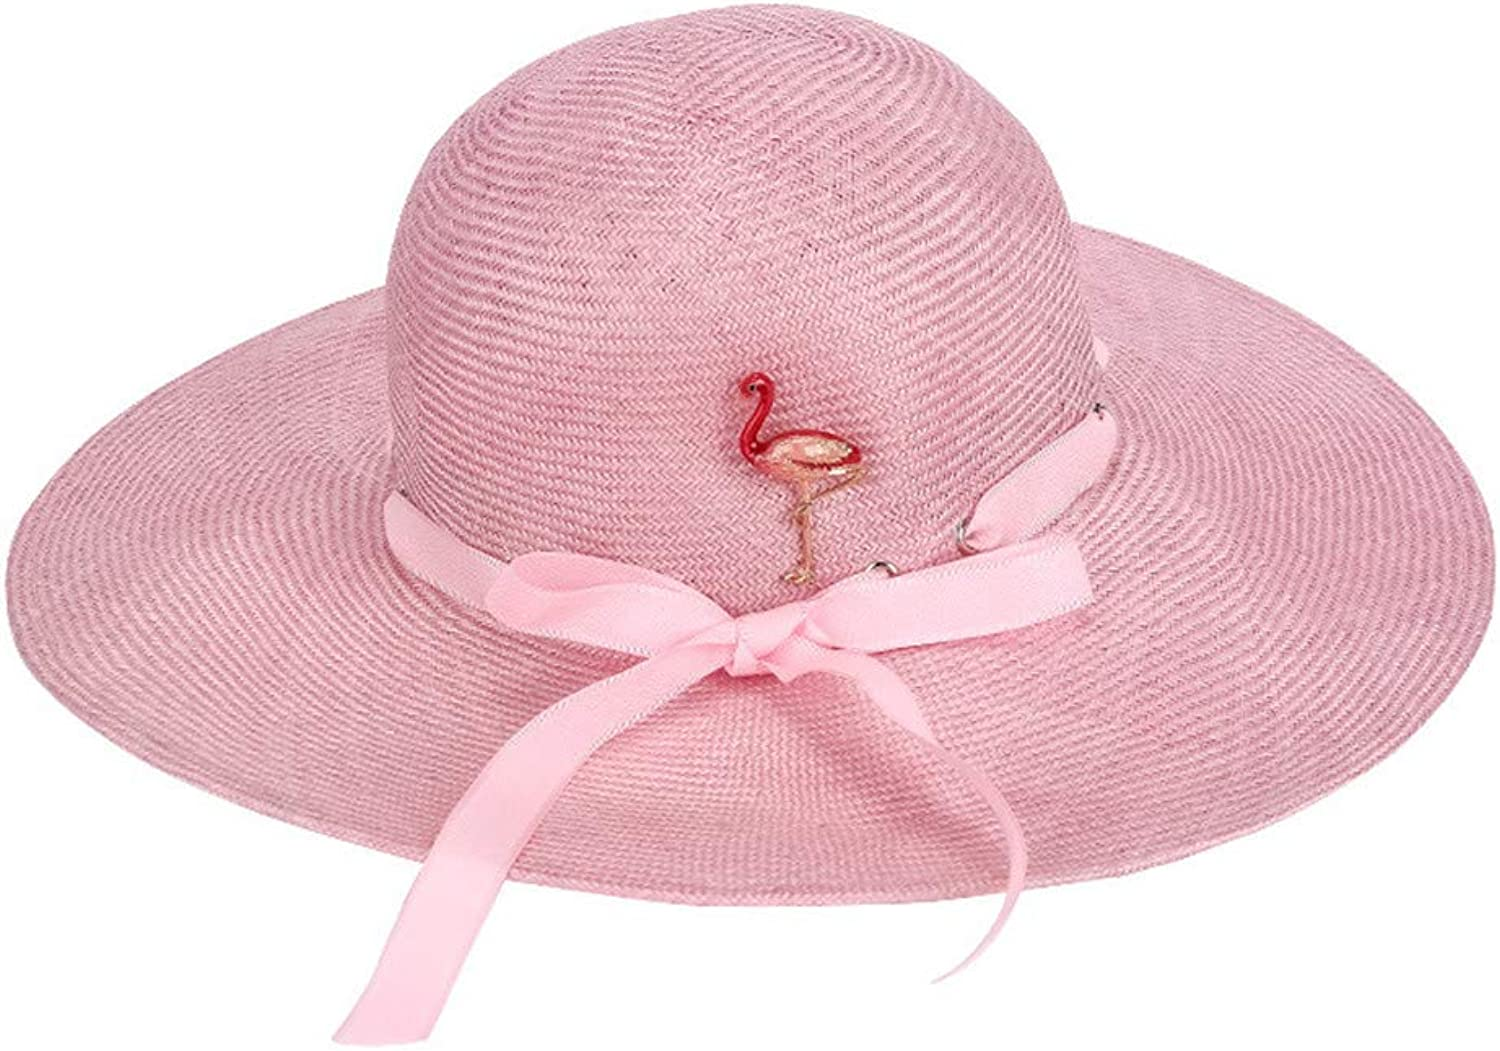 Womens Wide Brim Sun Hat UPF Beach Summer Sun Straw Hats for Women Travel Hat